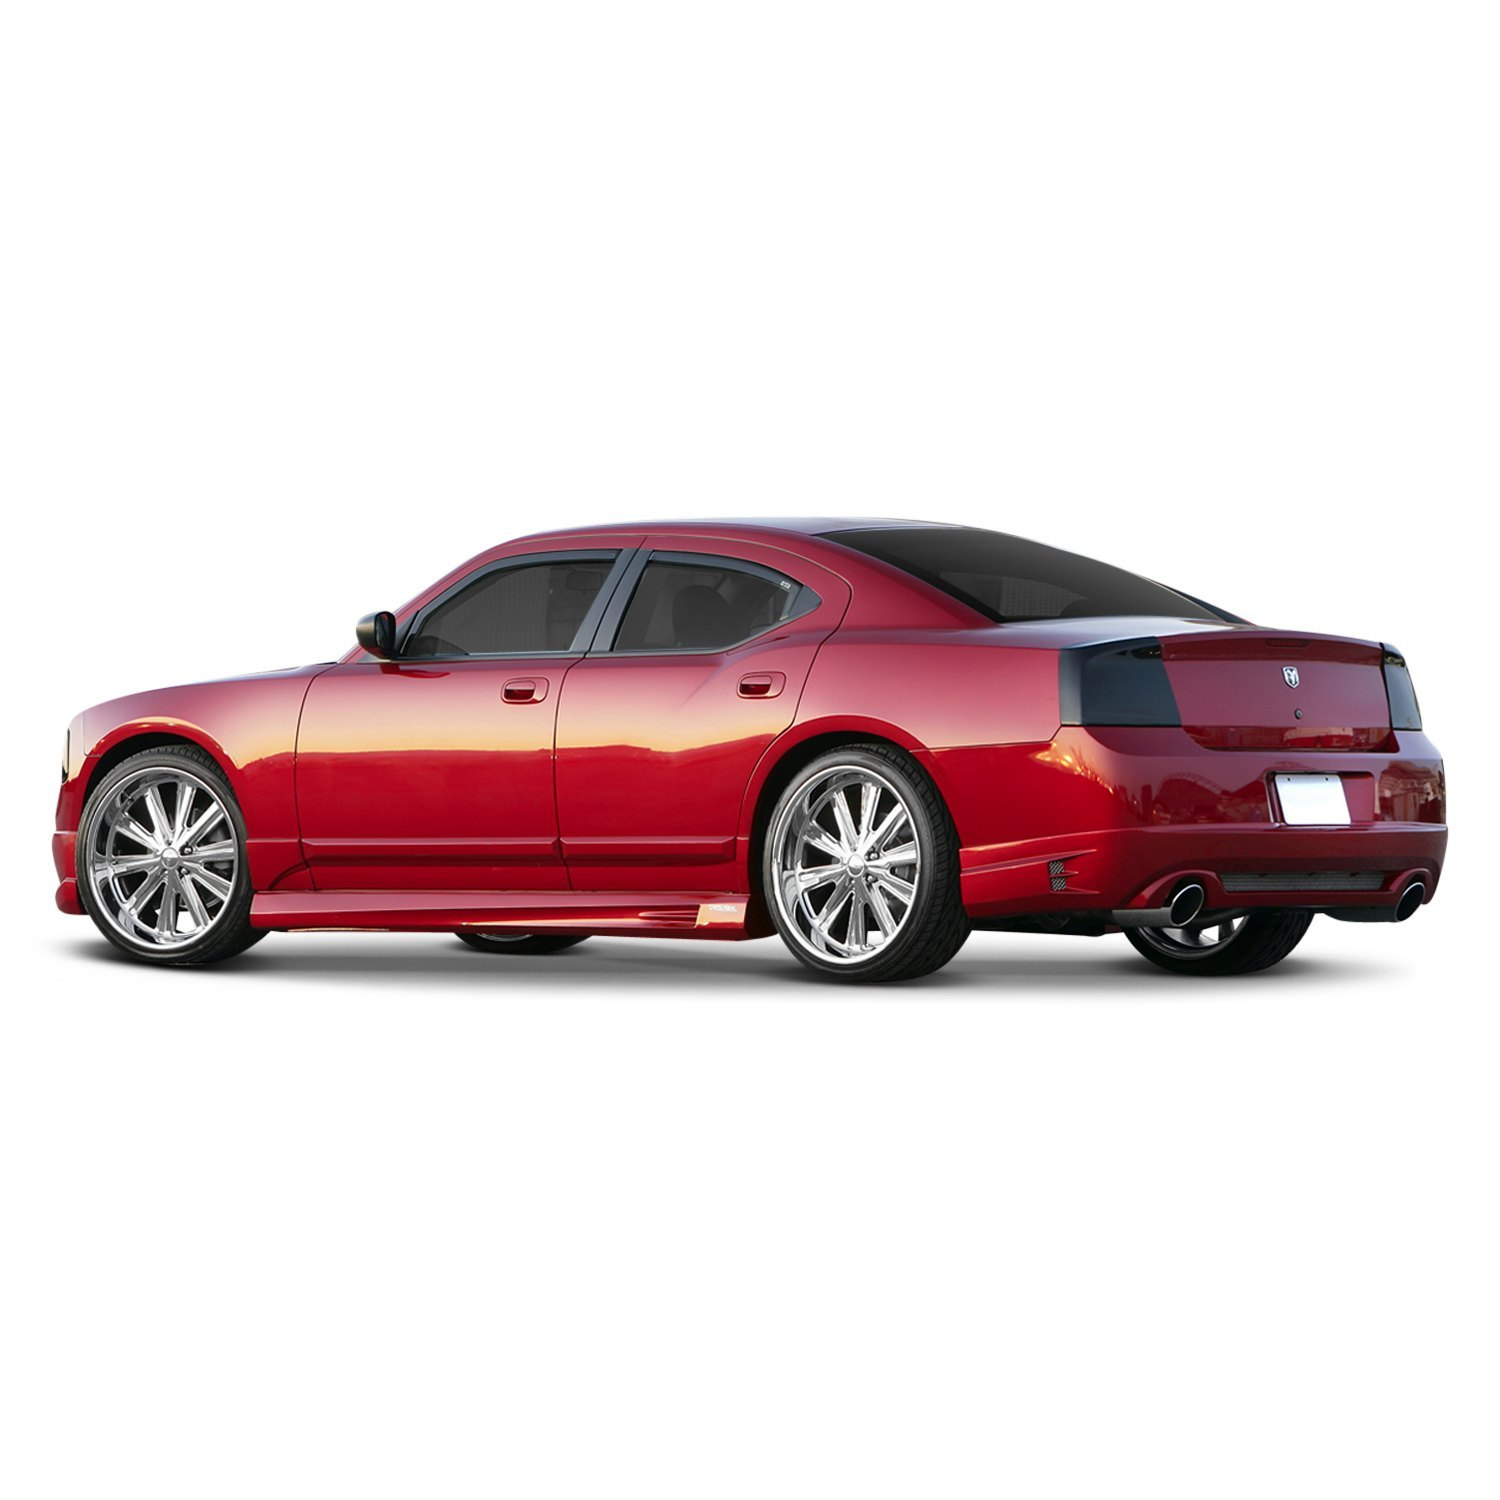 xenon dodge charger daytona r t r t se sxt 2008 2009 body kit. Cars Review. Best American Auto & Cars Review